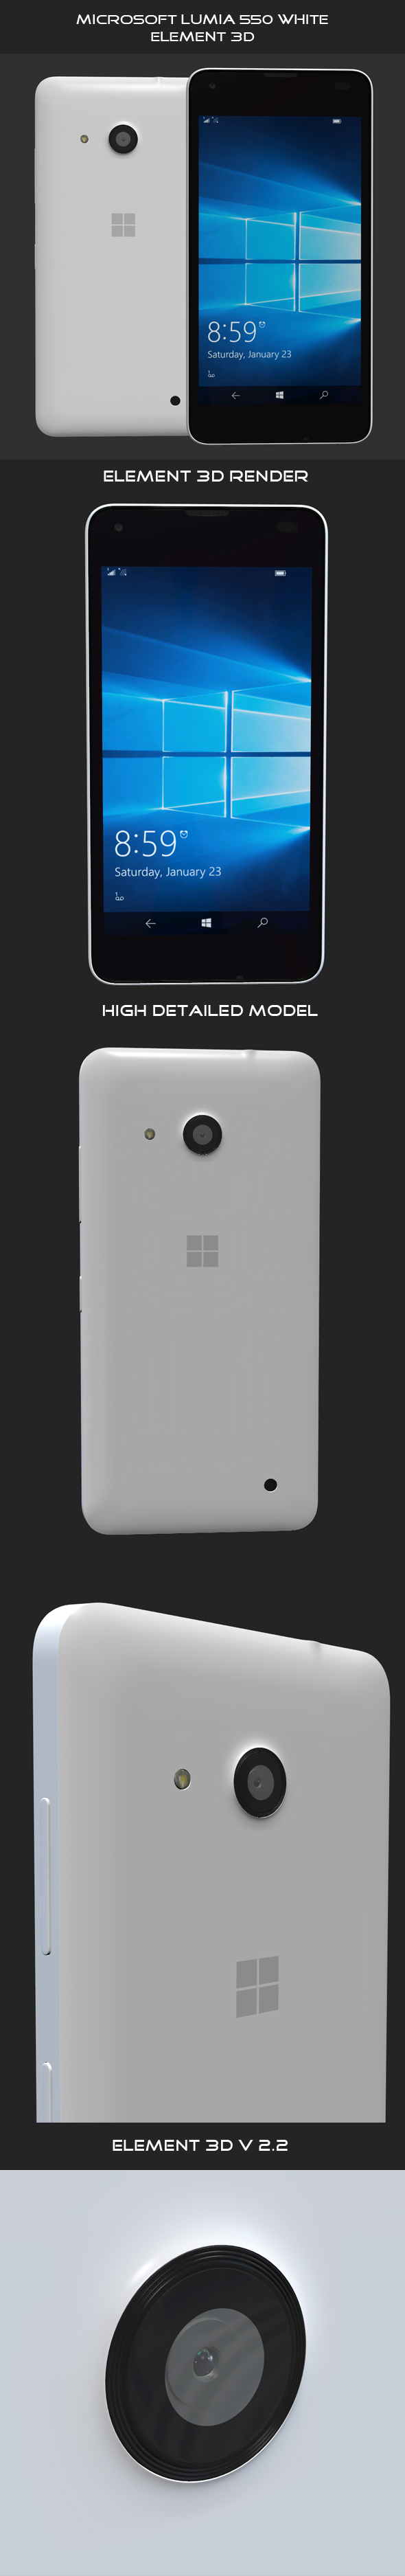 Microsoft Lumia 550 White - 3DOcean Item for Sale